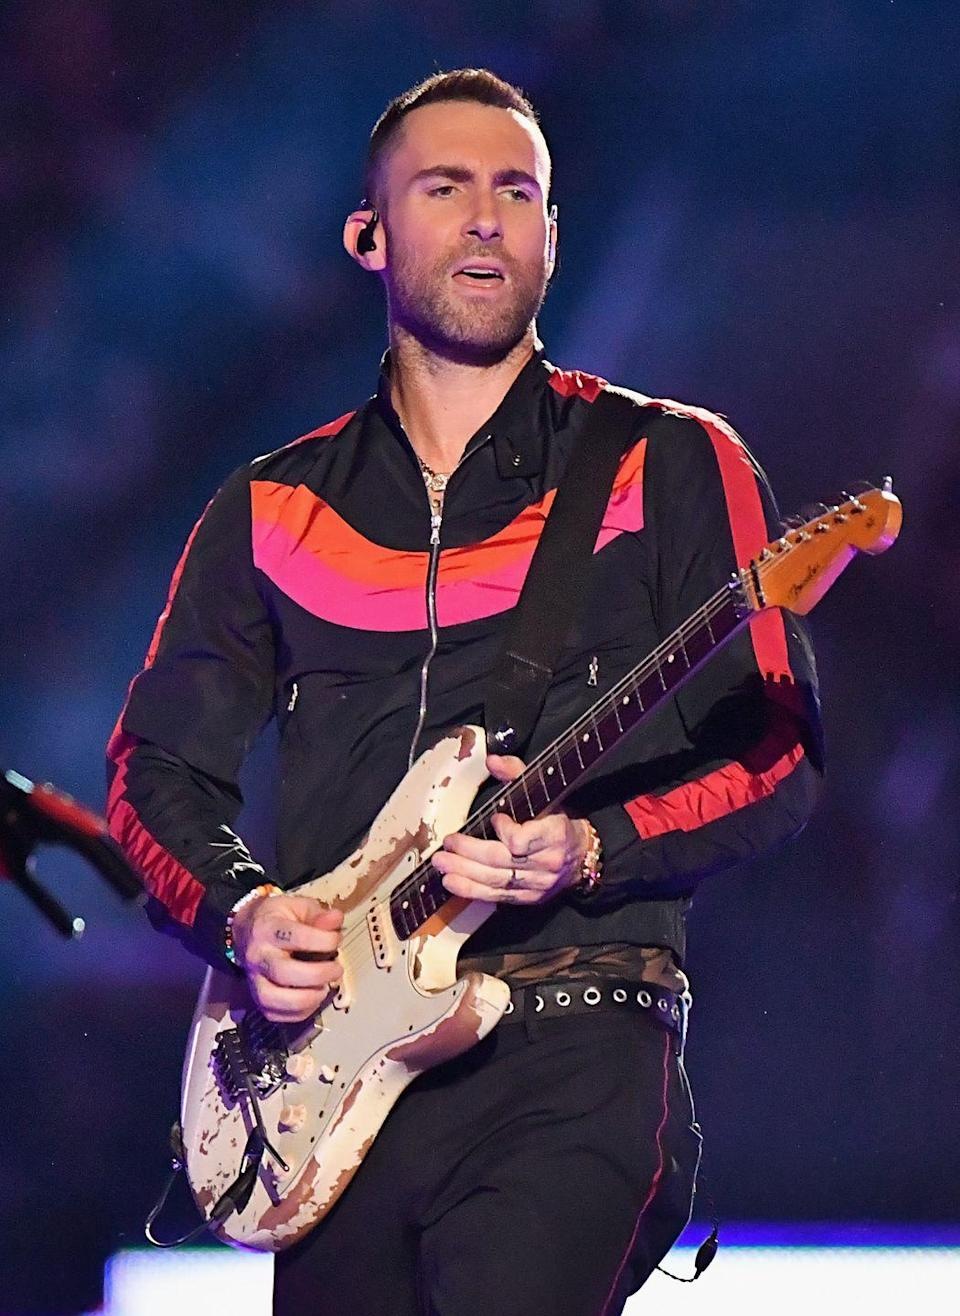 <p><b>Hair</b></p><p>From his sold-out concerts to sitting in the judges' chair on <em>The Voice</em>, Levine isn't afraid to experiment with fashion. </p>